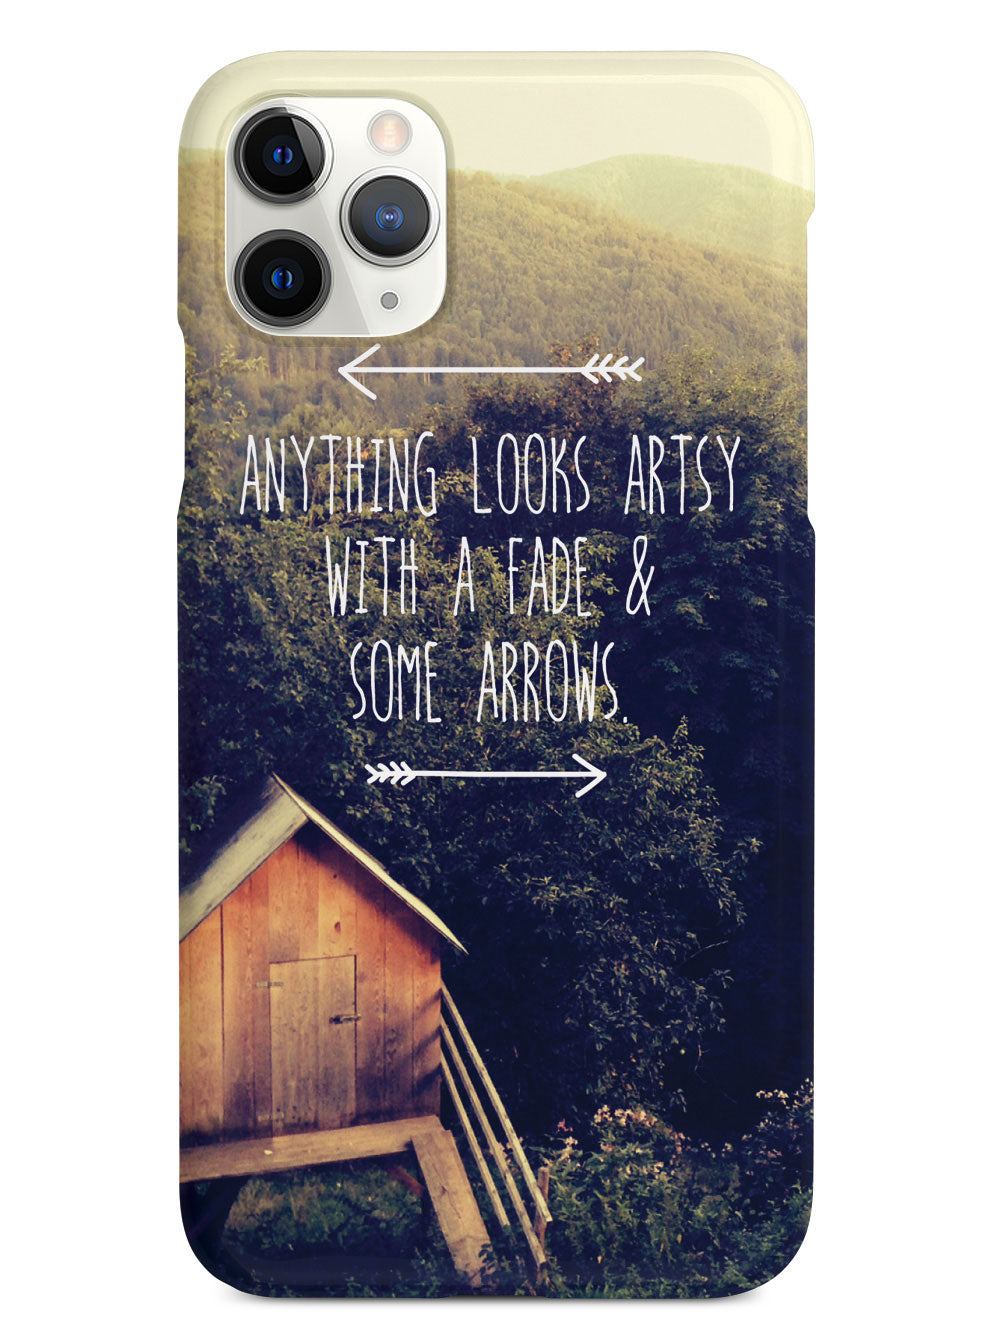 Anything Looks Artsy Humor Funny Case